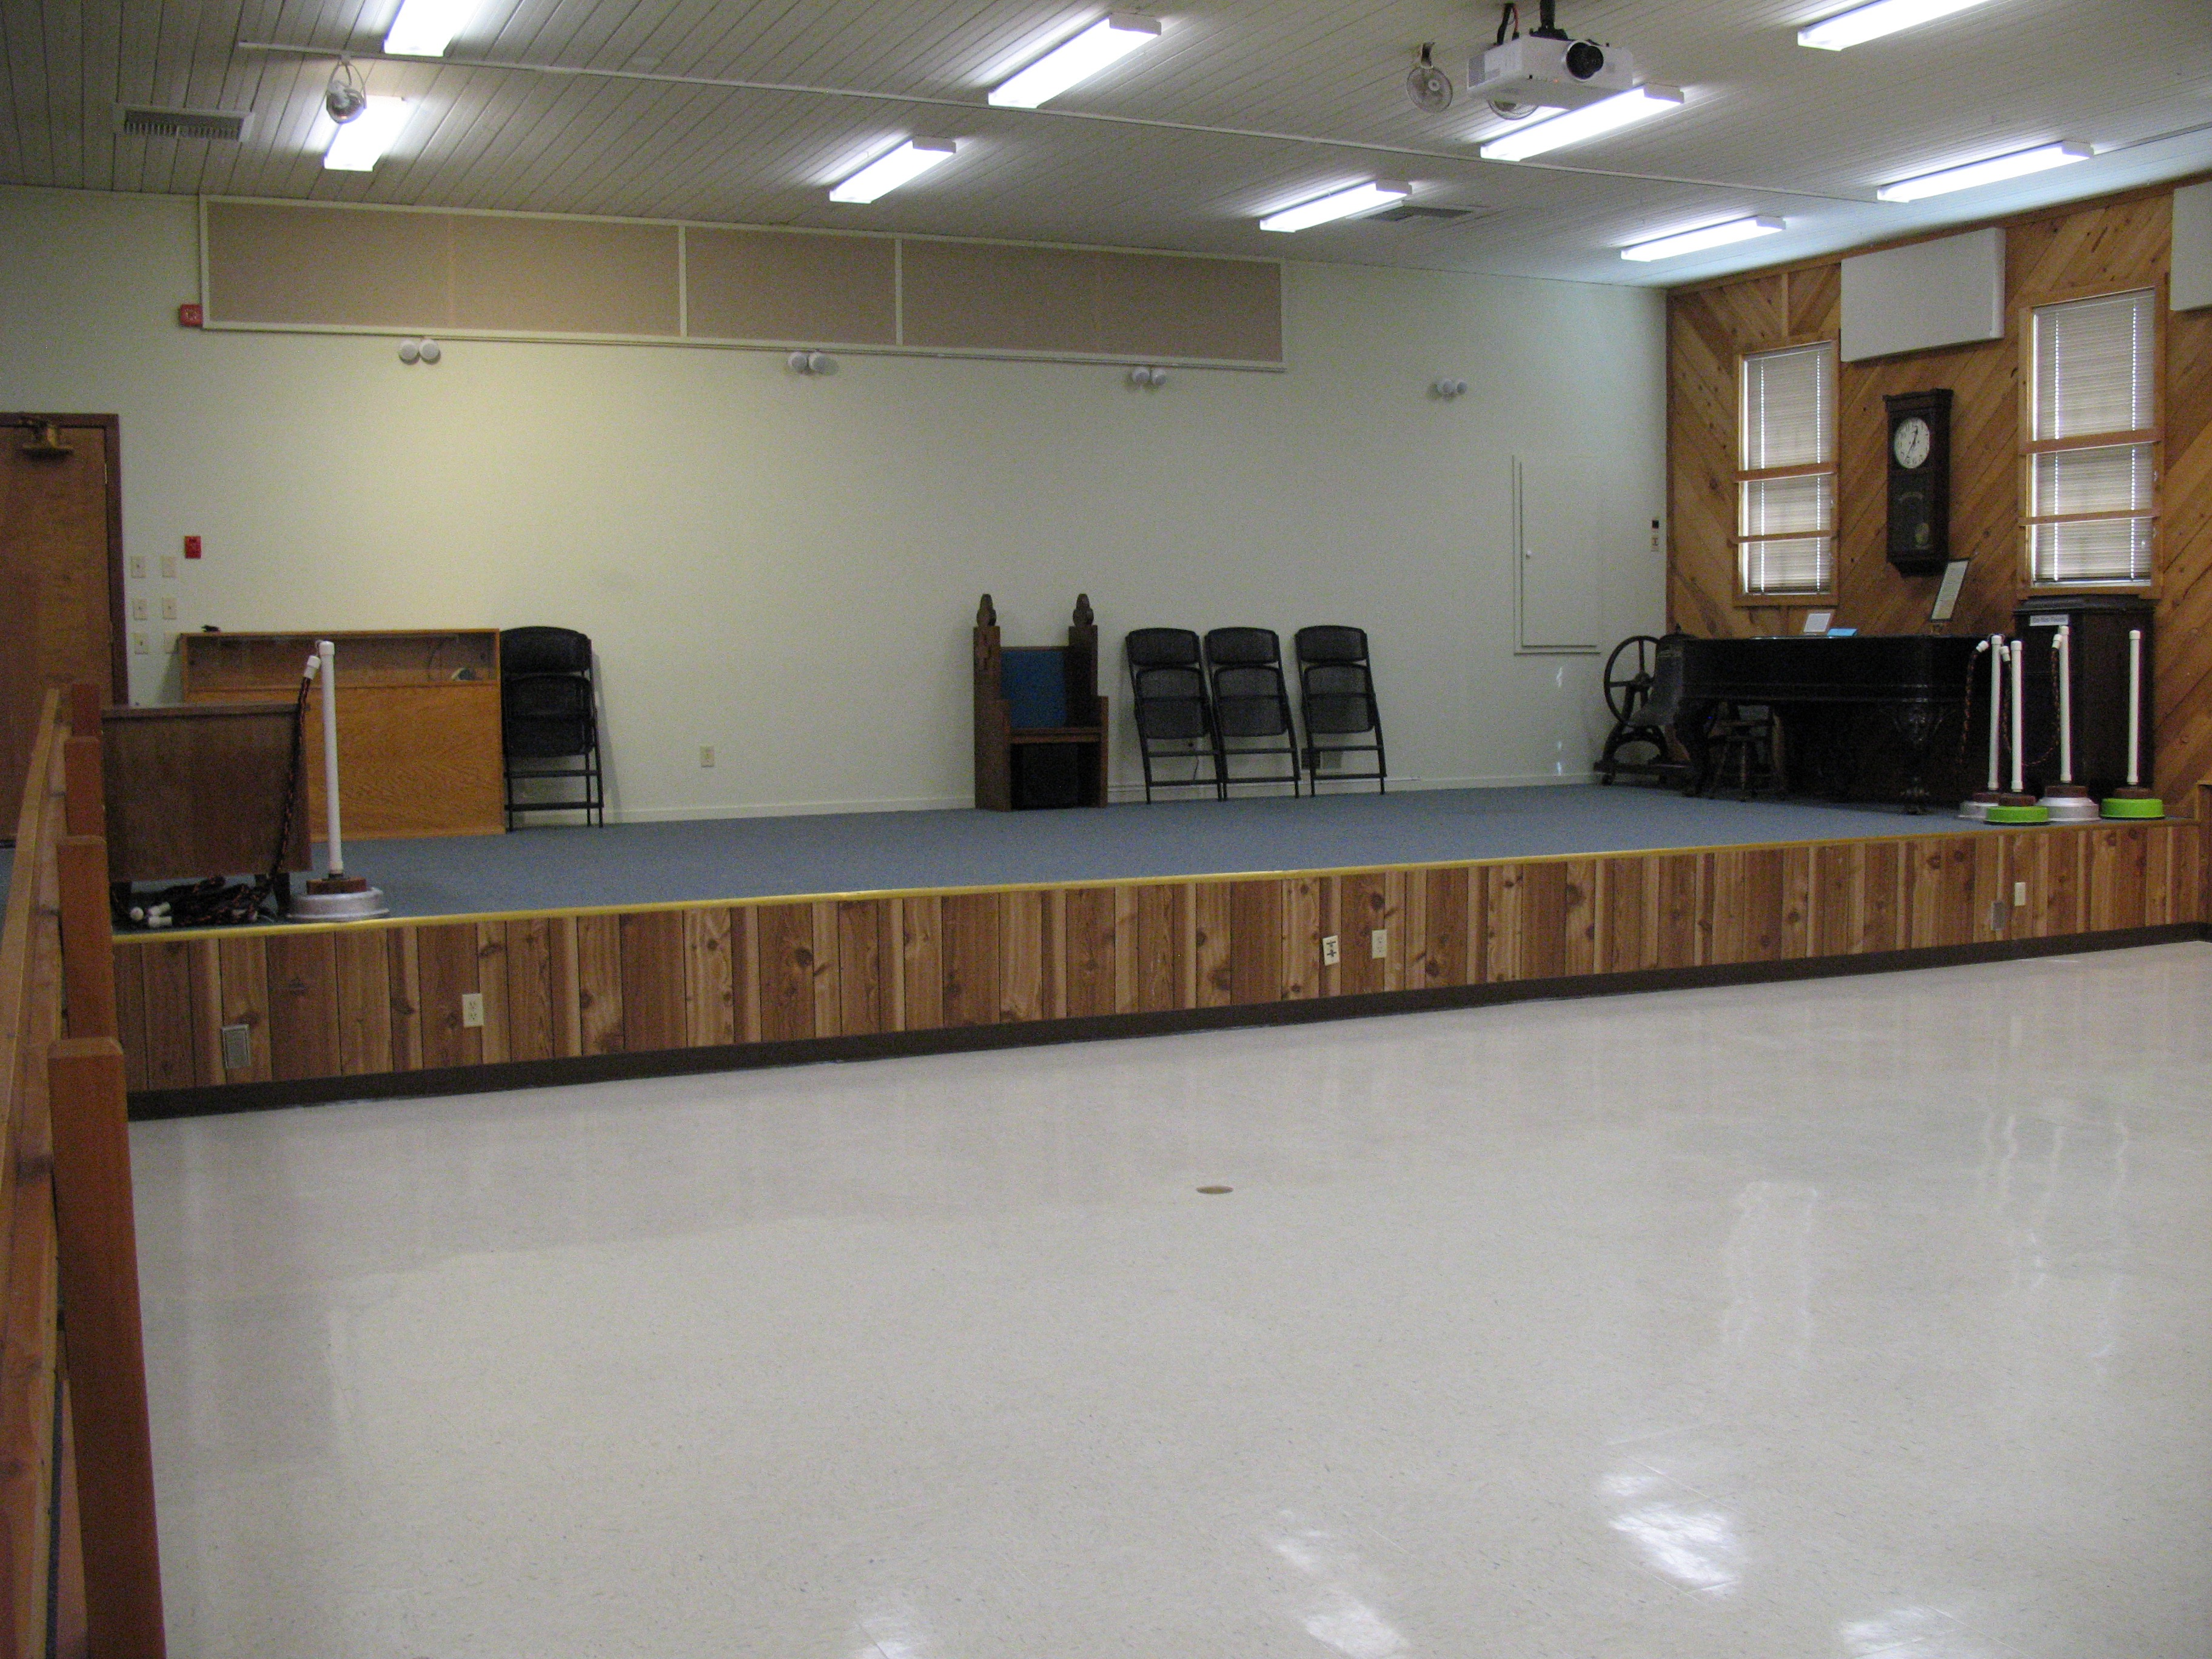 A stage in a community center